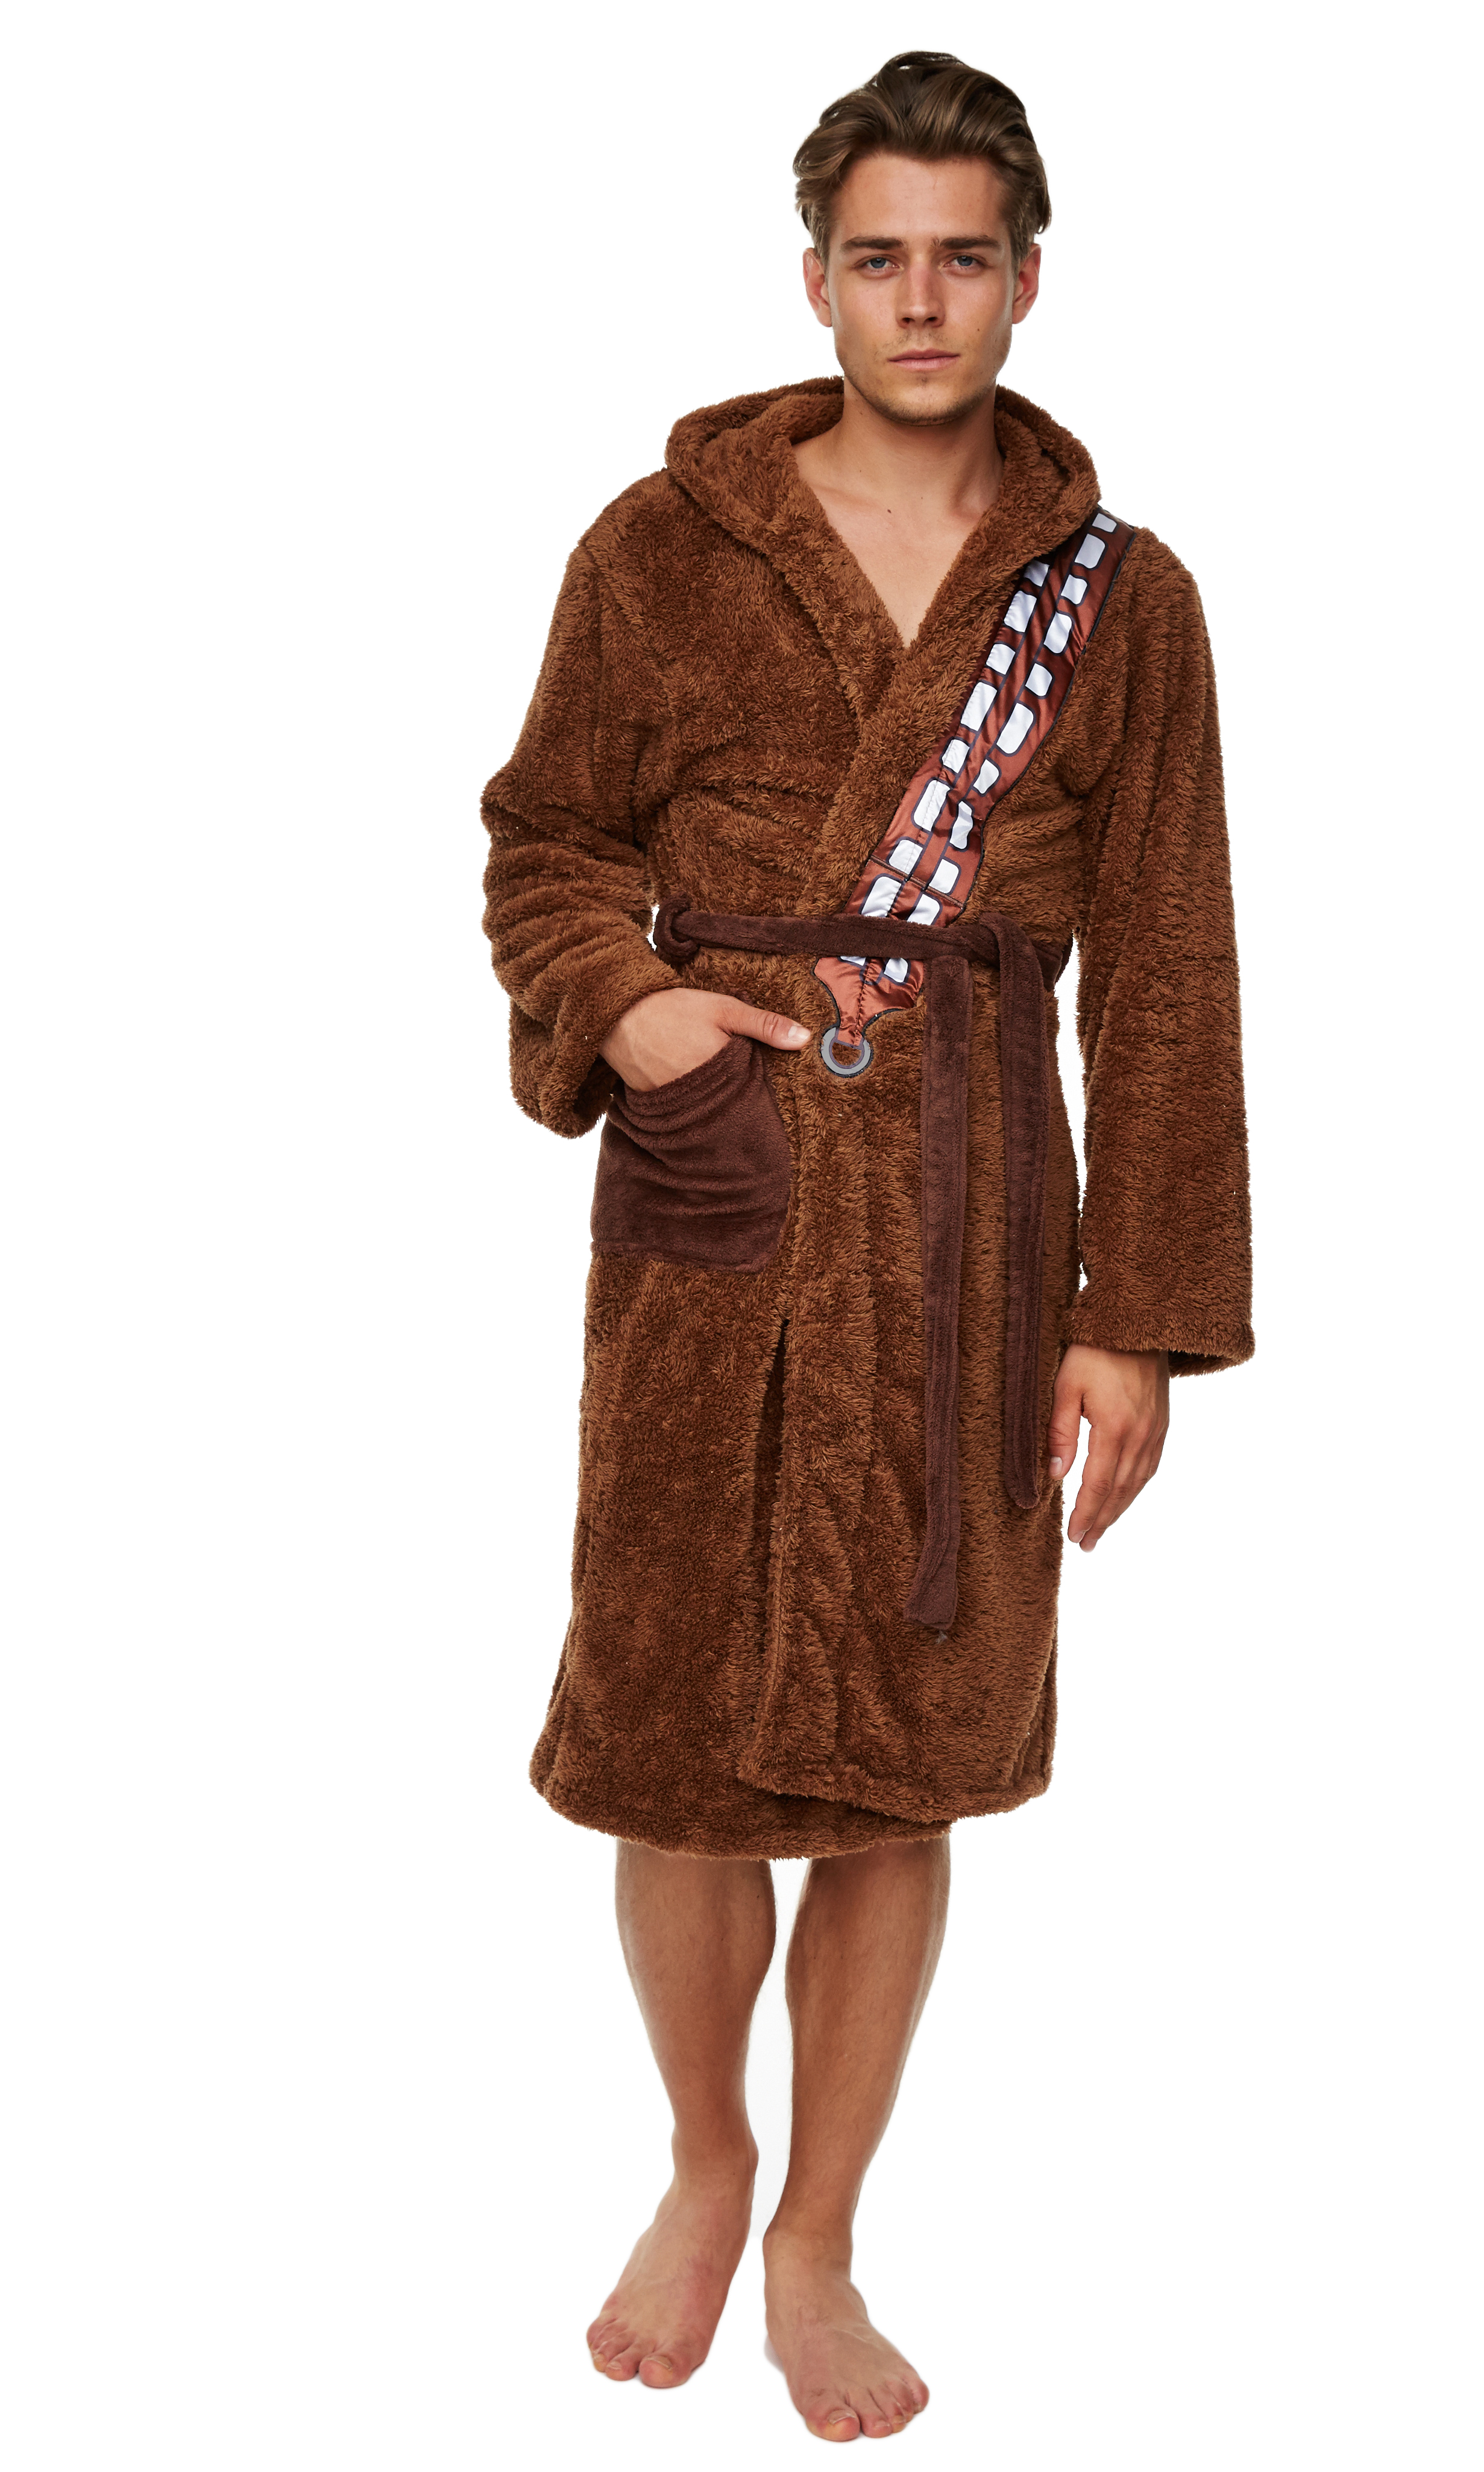 dressing gown – TruffleShuffle.com Official Blog